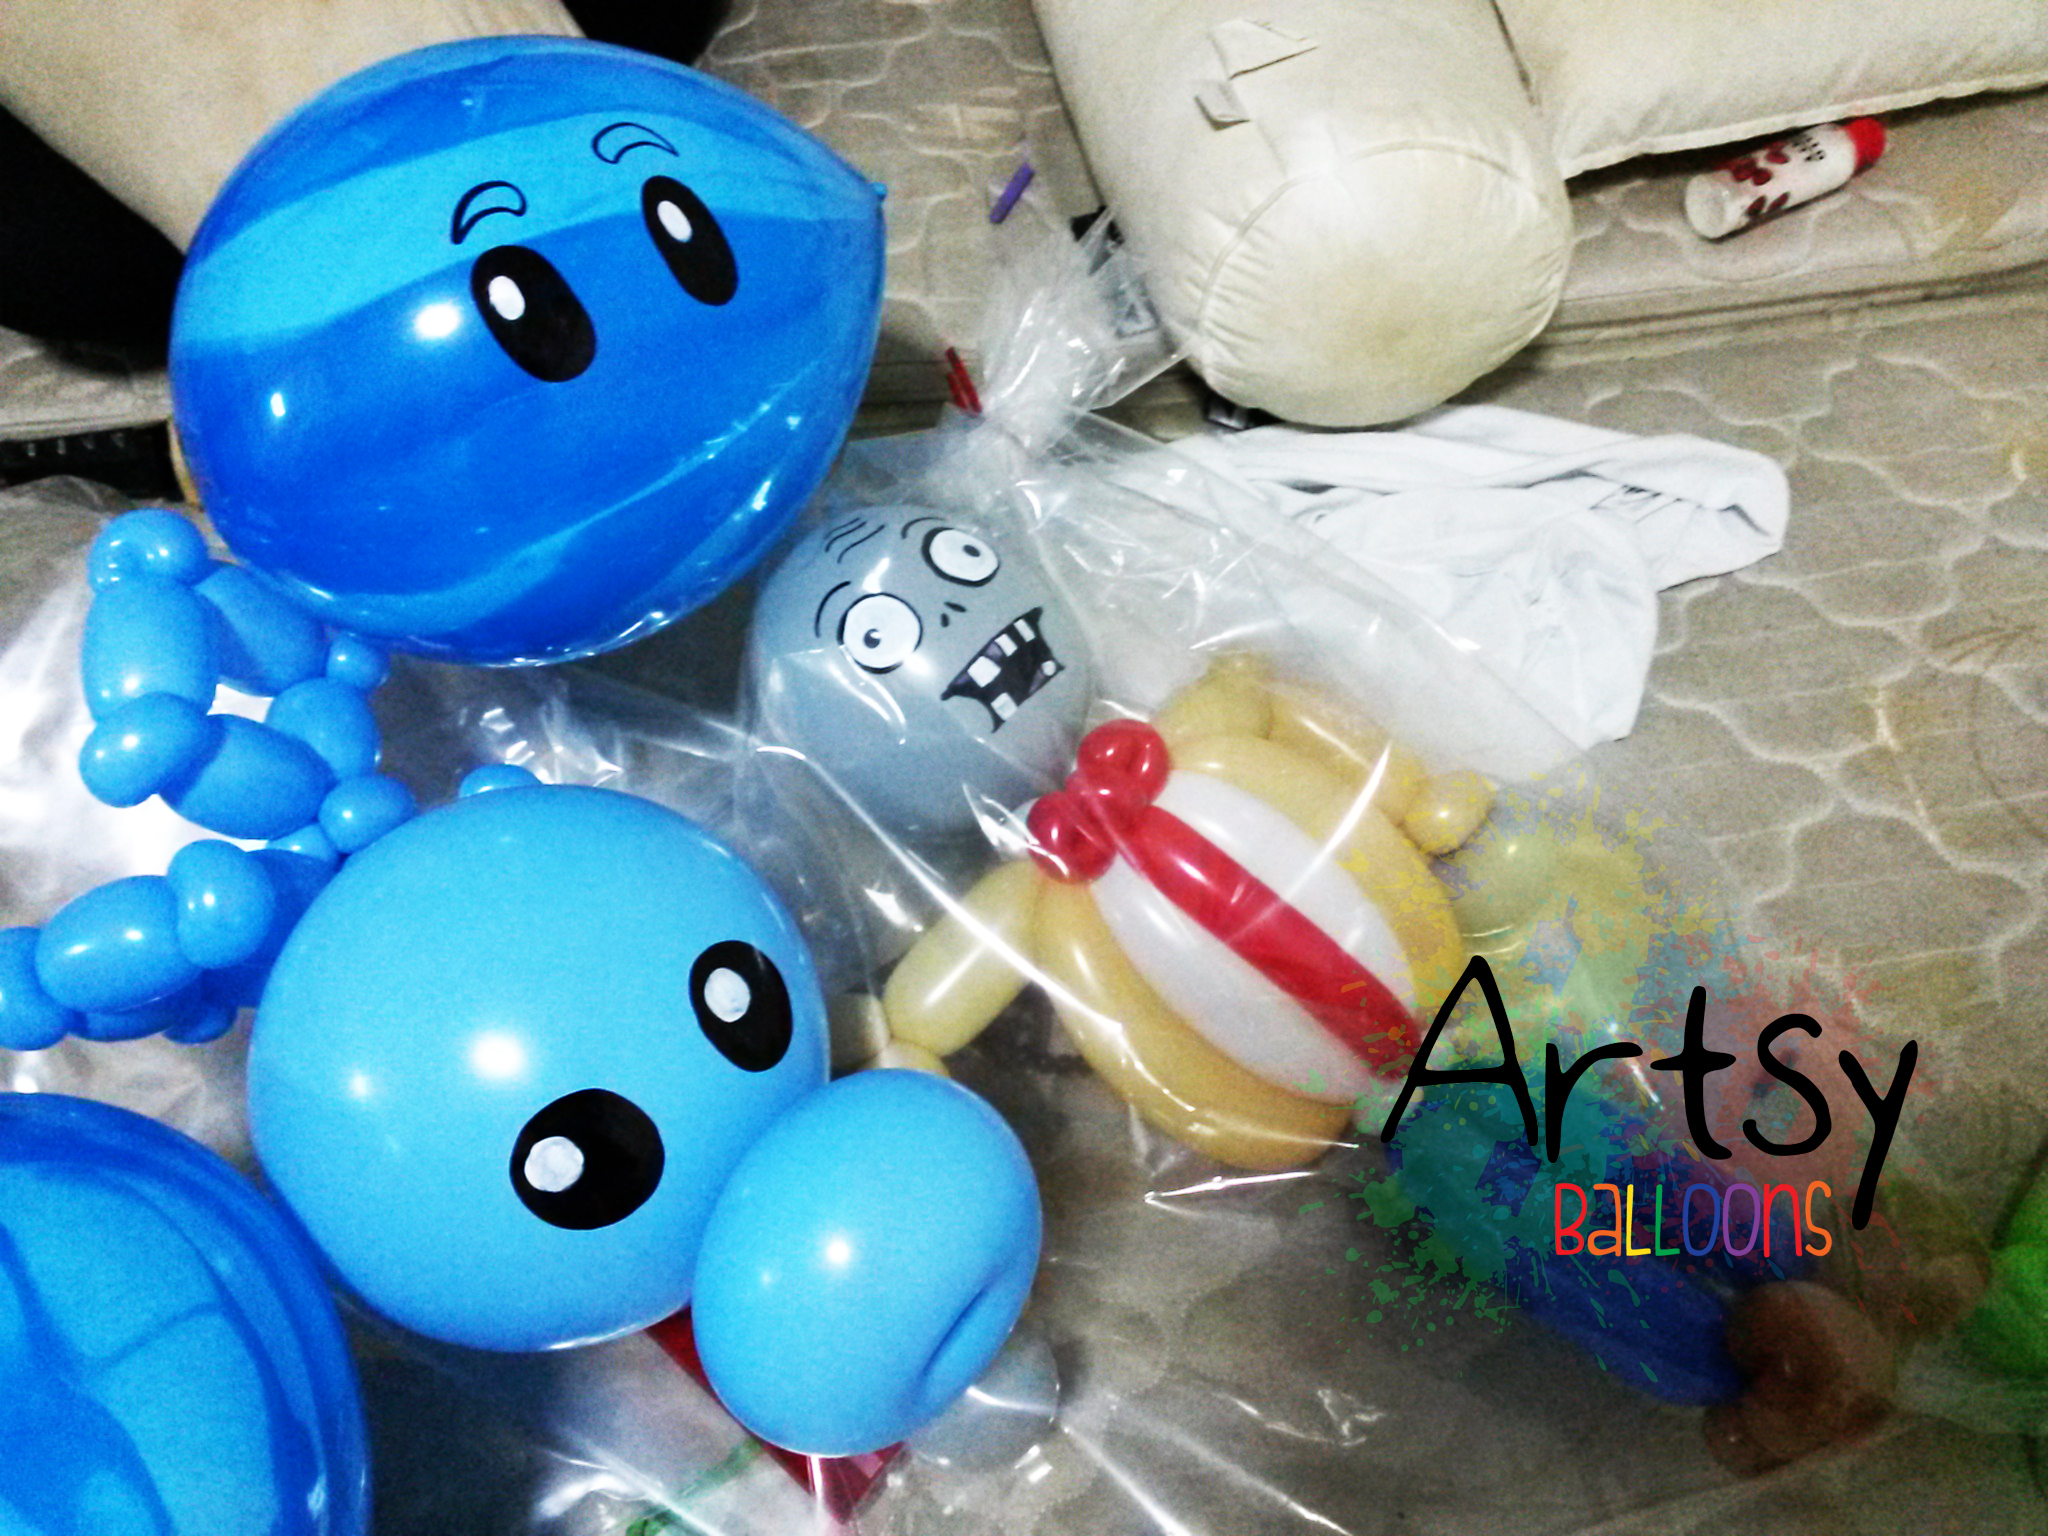 , Plants VS Zombie Themed Party!, Singapore Balloon Decoration Services - Balloon Workshop and Balloon Sculpting